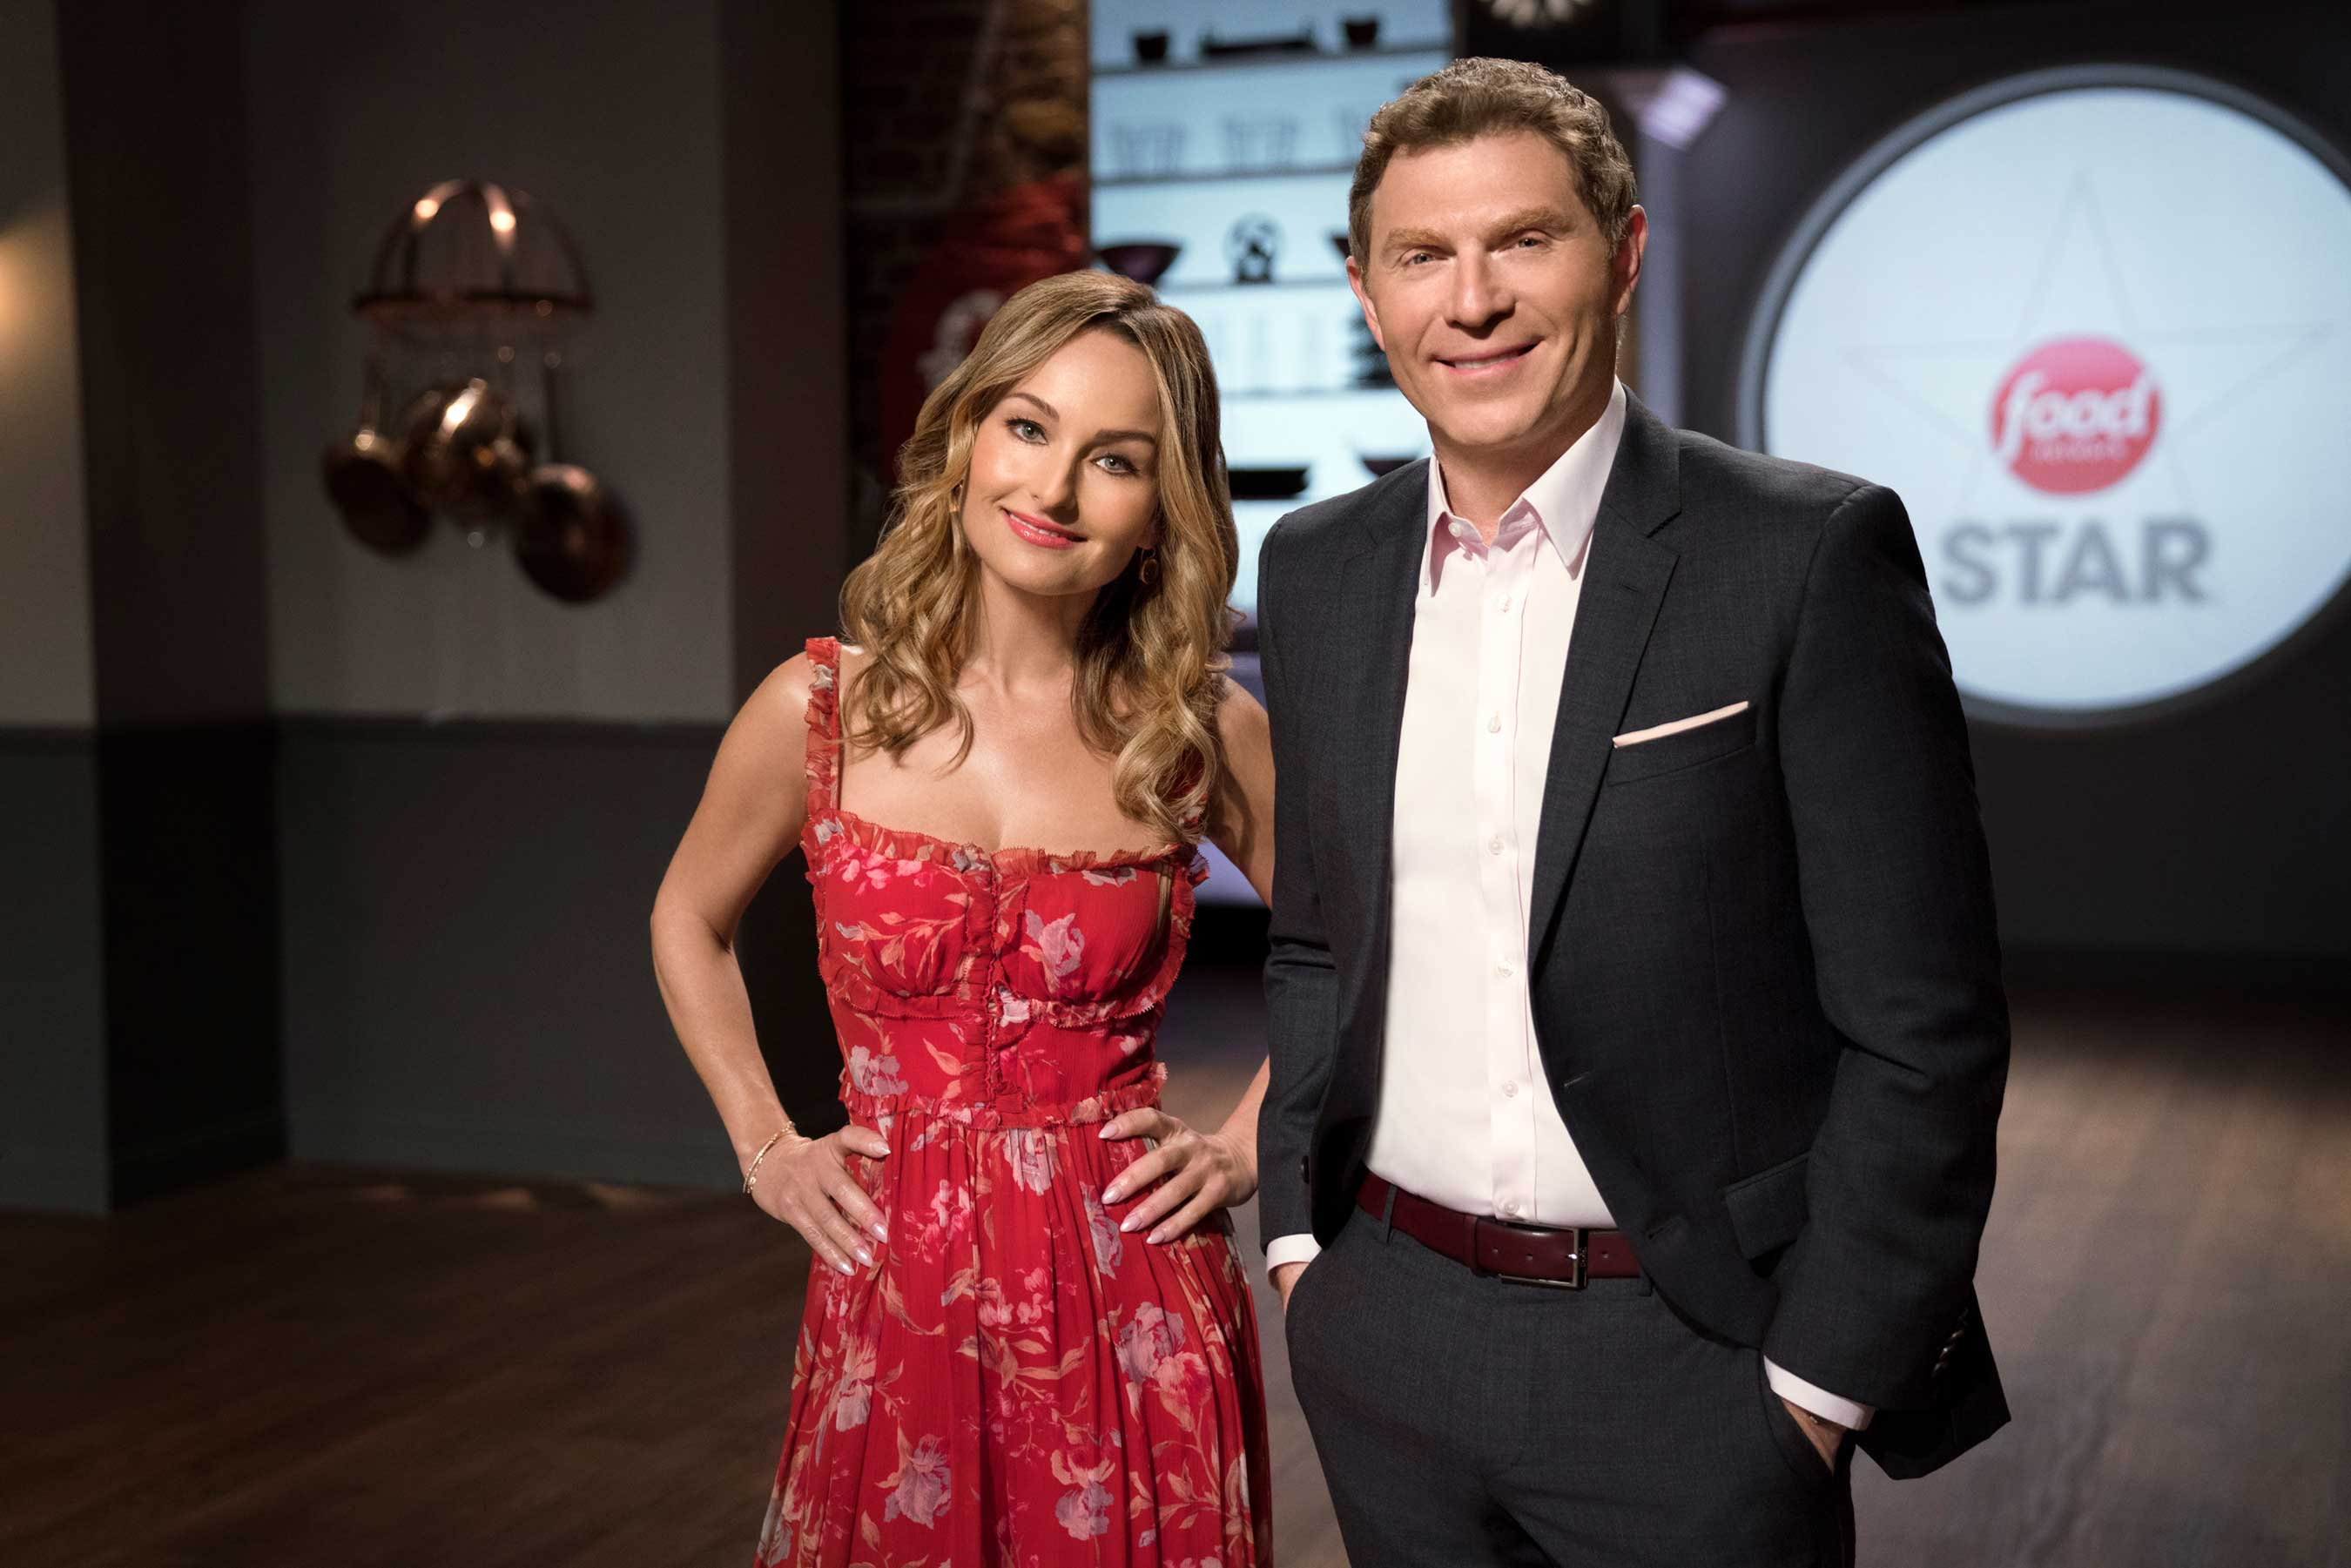 Food Network Star Returns With New Cast Of Hopefuls Competing Fo